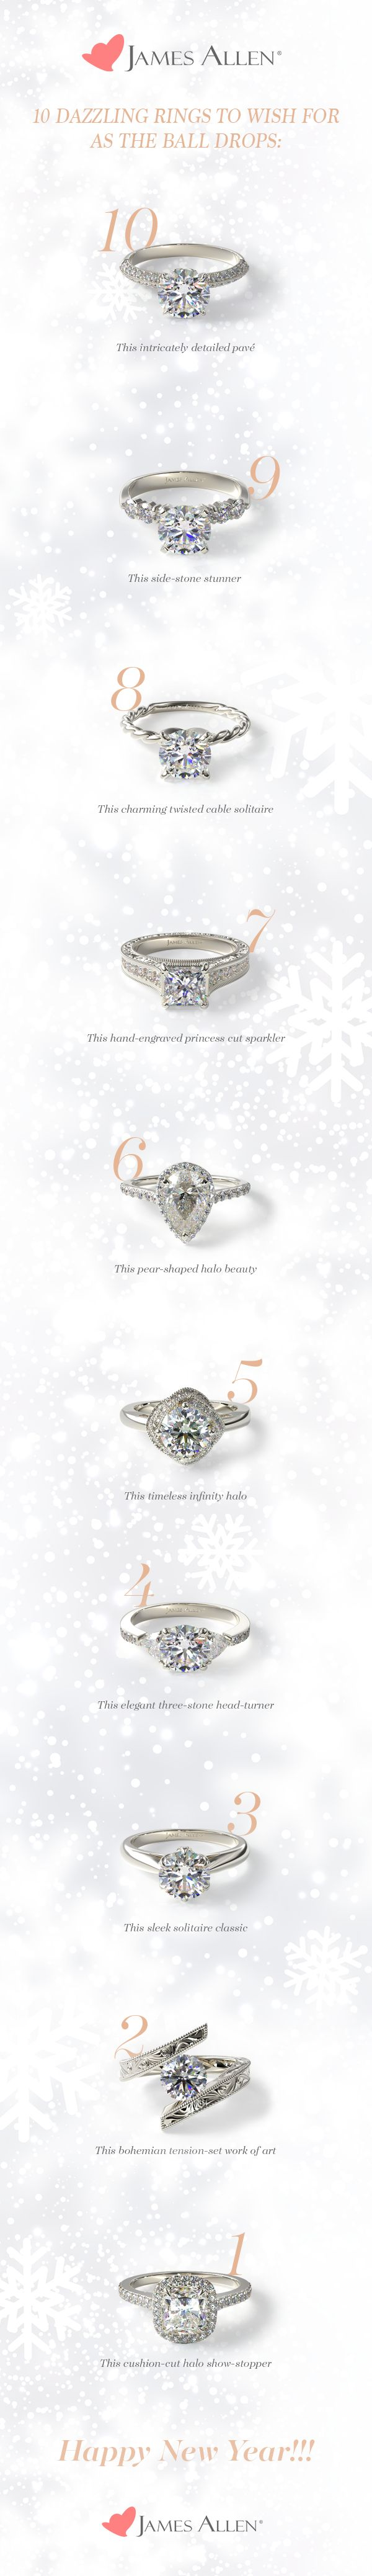 how to clean nike free run 3.0 shoes Dazzling engagement rings for every style. Design your dream engagement ring and make 2016 the best year yet! Which of these beauties will you be wishing for as the clock strikes midnight? | #jamesallenrings